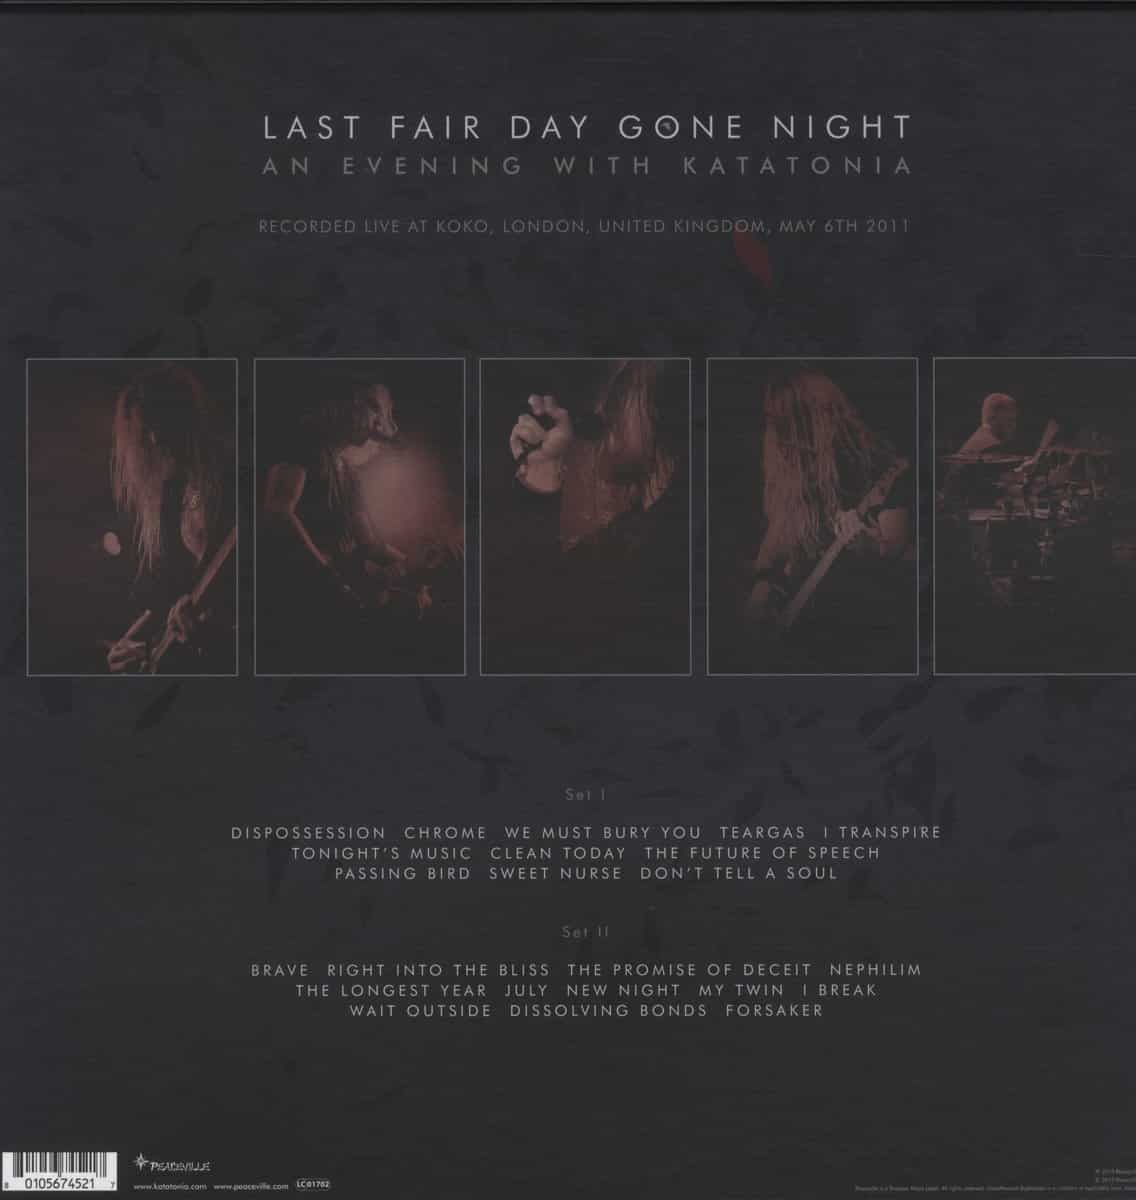 Last Fair Day Gone Night – An Evening With Katatonia